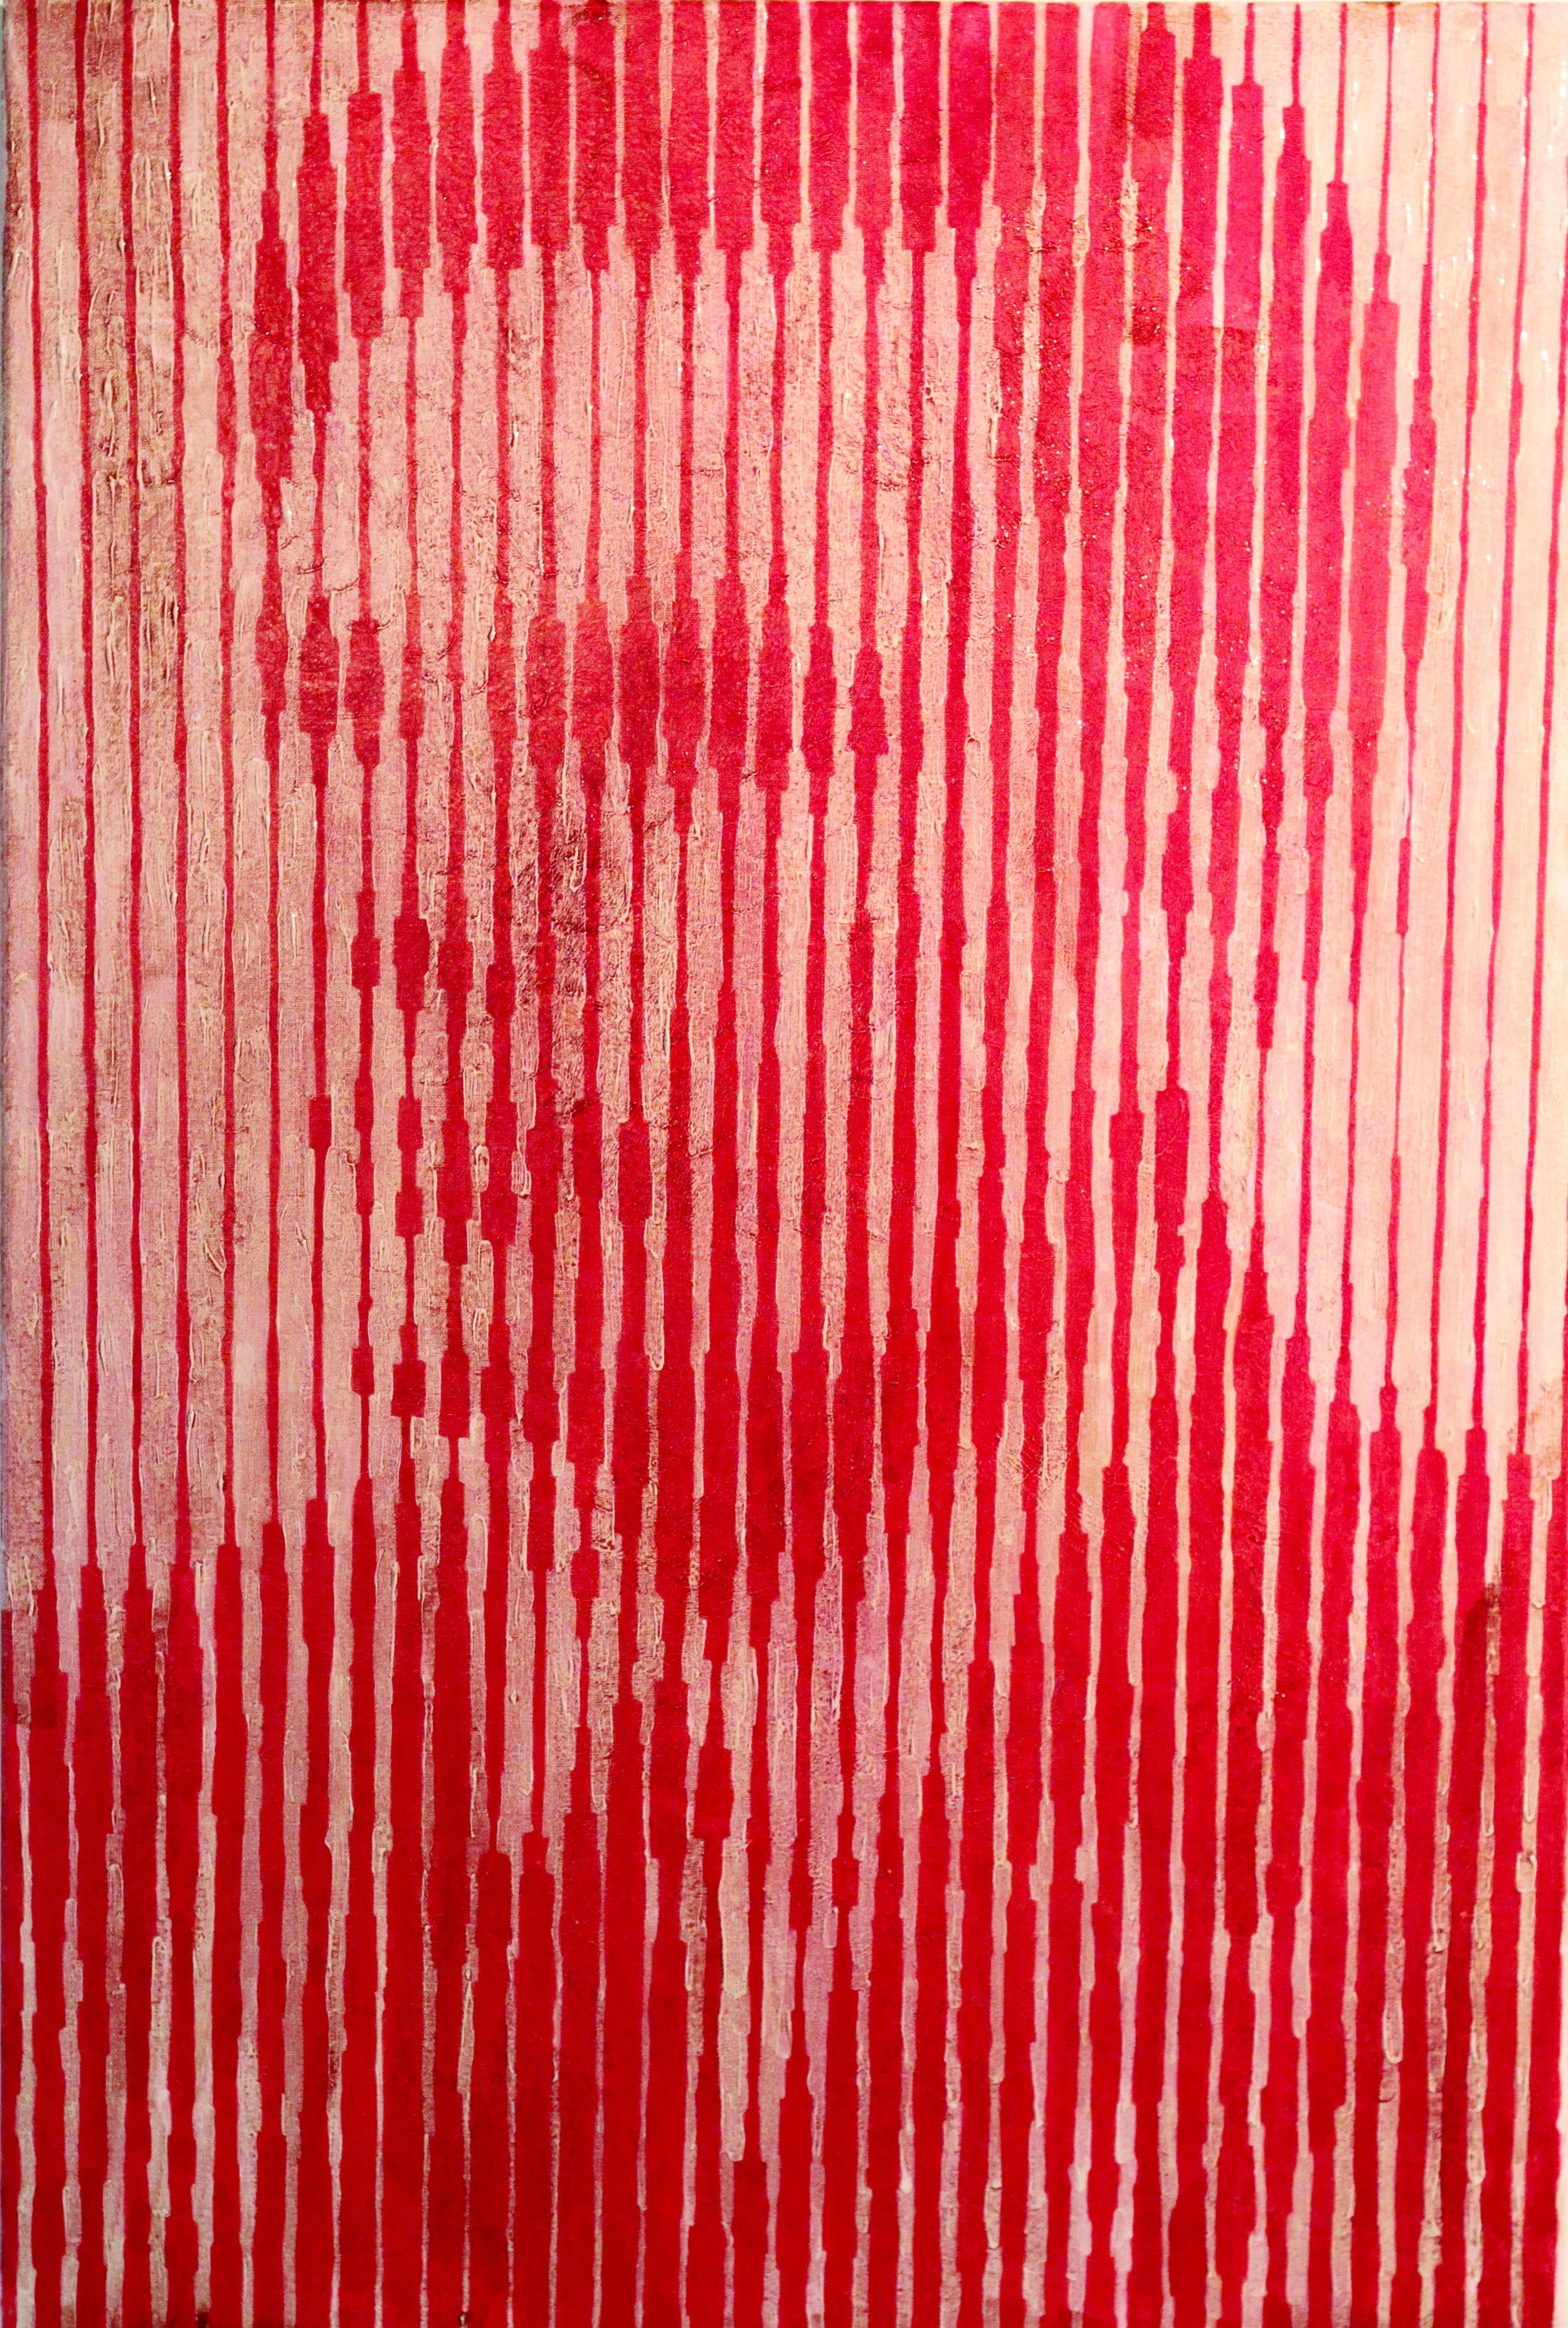 Conor Collins, Alan Turing II, Human Blood, Acrylic Paint and Ink on Canvas, 90 cm x 60 cm x 3 cm,  http://www.conartworks.com